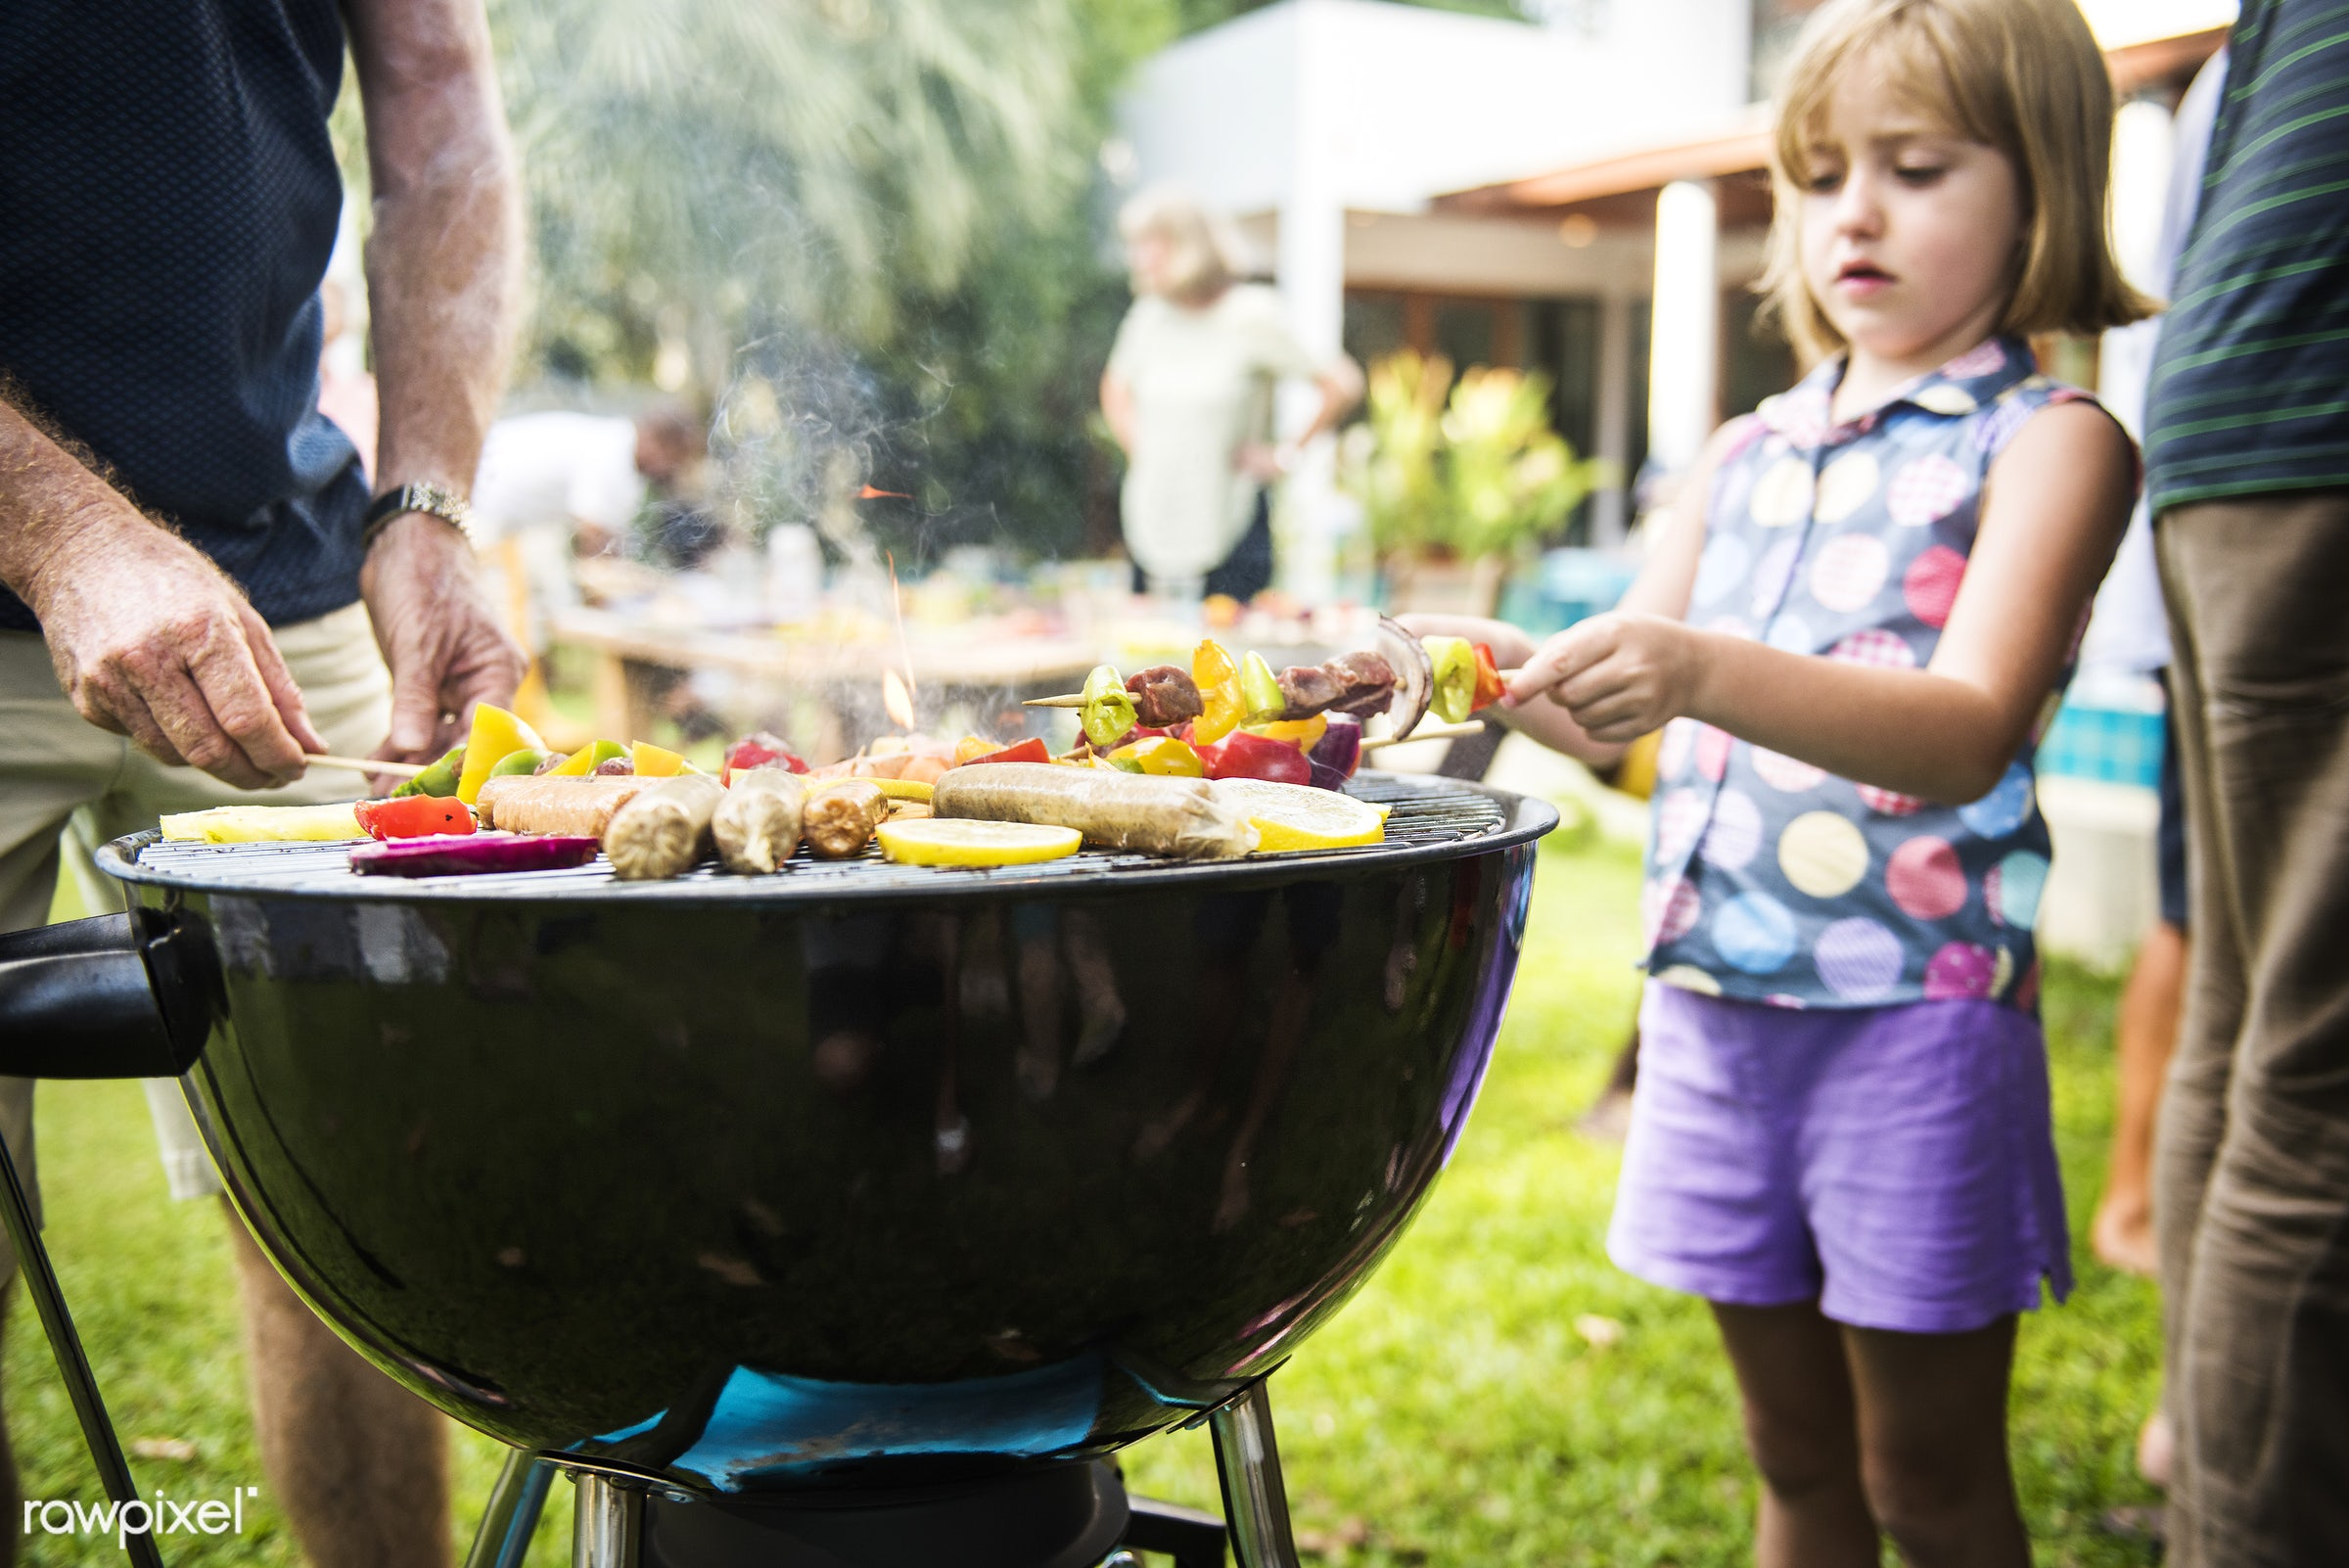 barbecue, bbq, charcoals, cook, cooking, cookout, diverse, family, food, garden, grass, grill, group, holiday, homemade,...